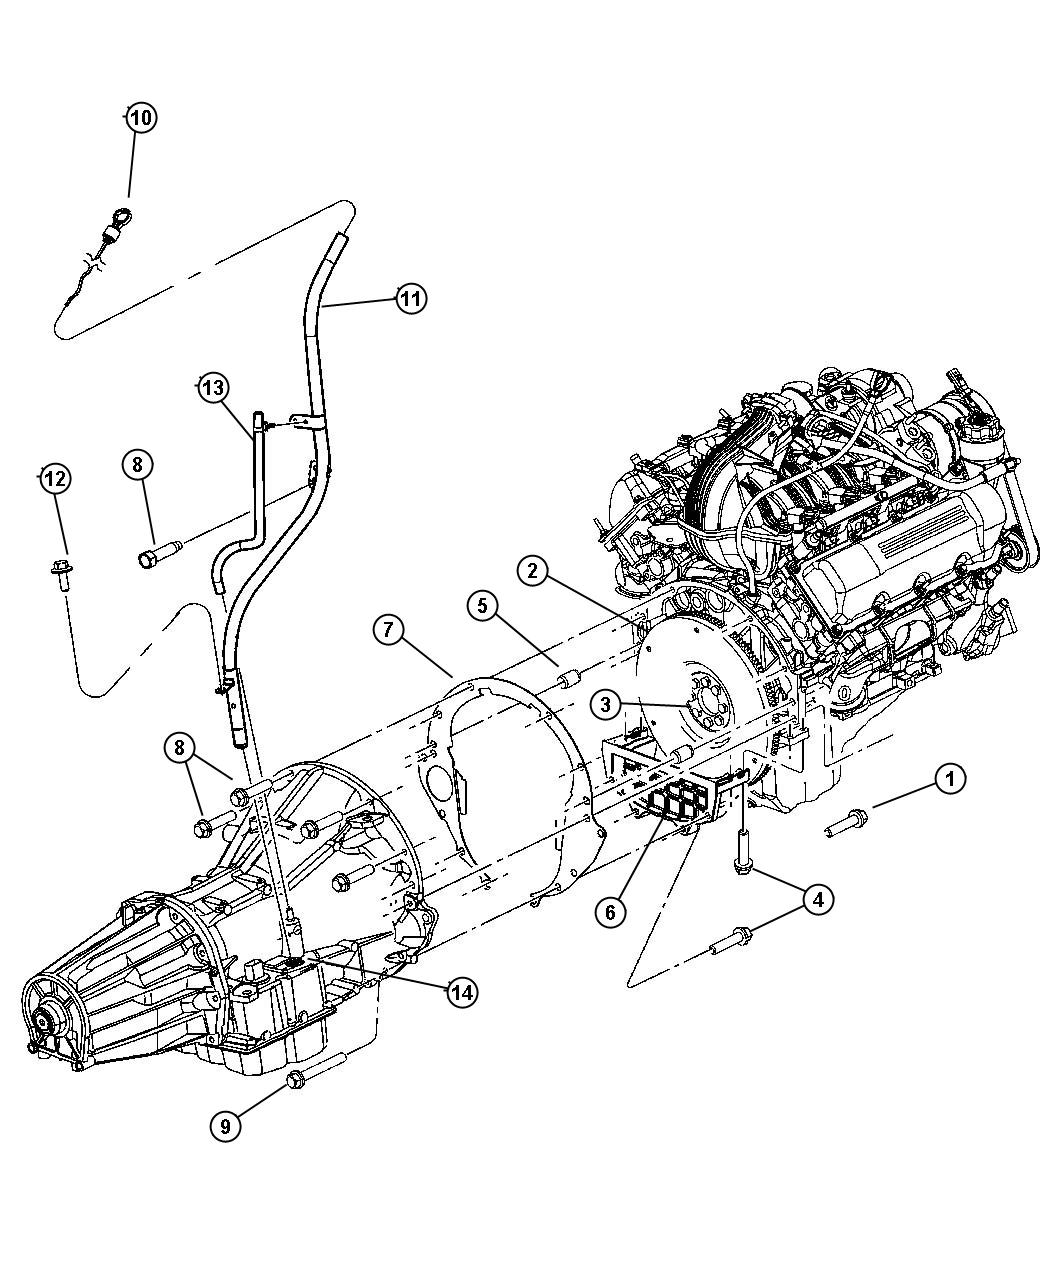 2004 Dodge Dakota Transmission Diagram, 2004, Free Engine